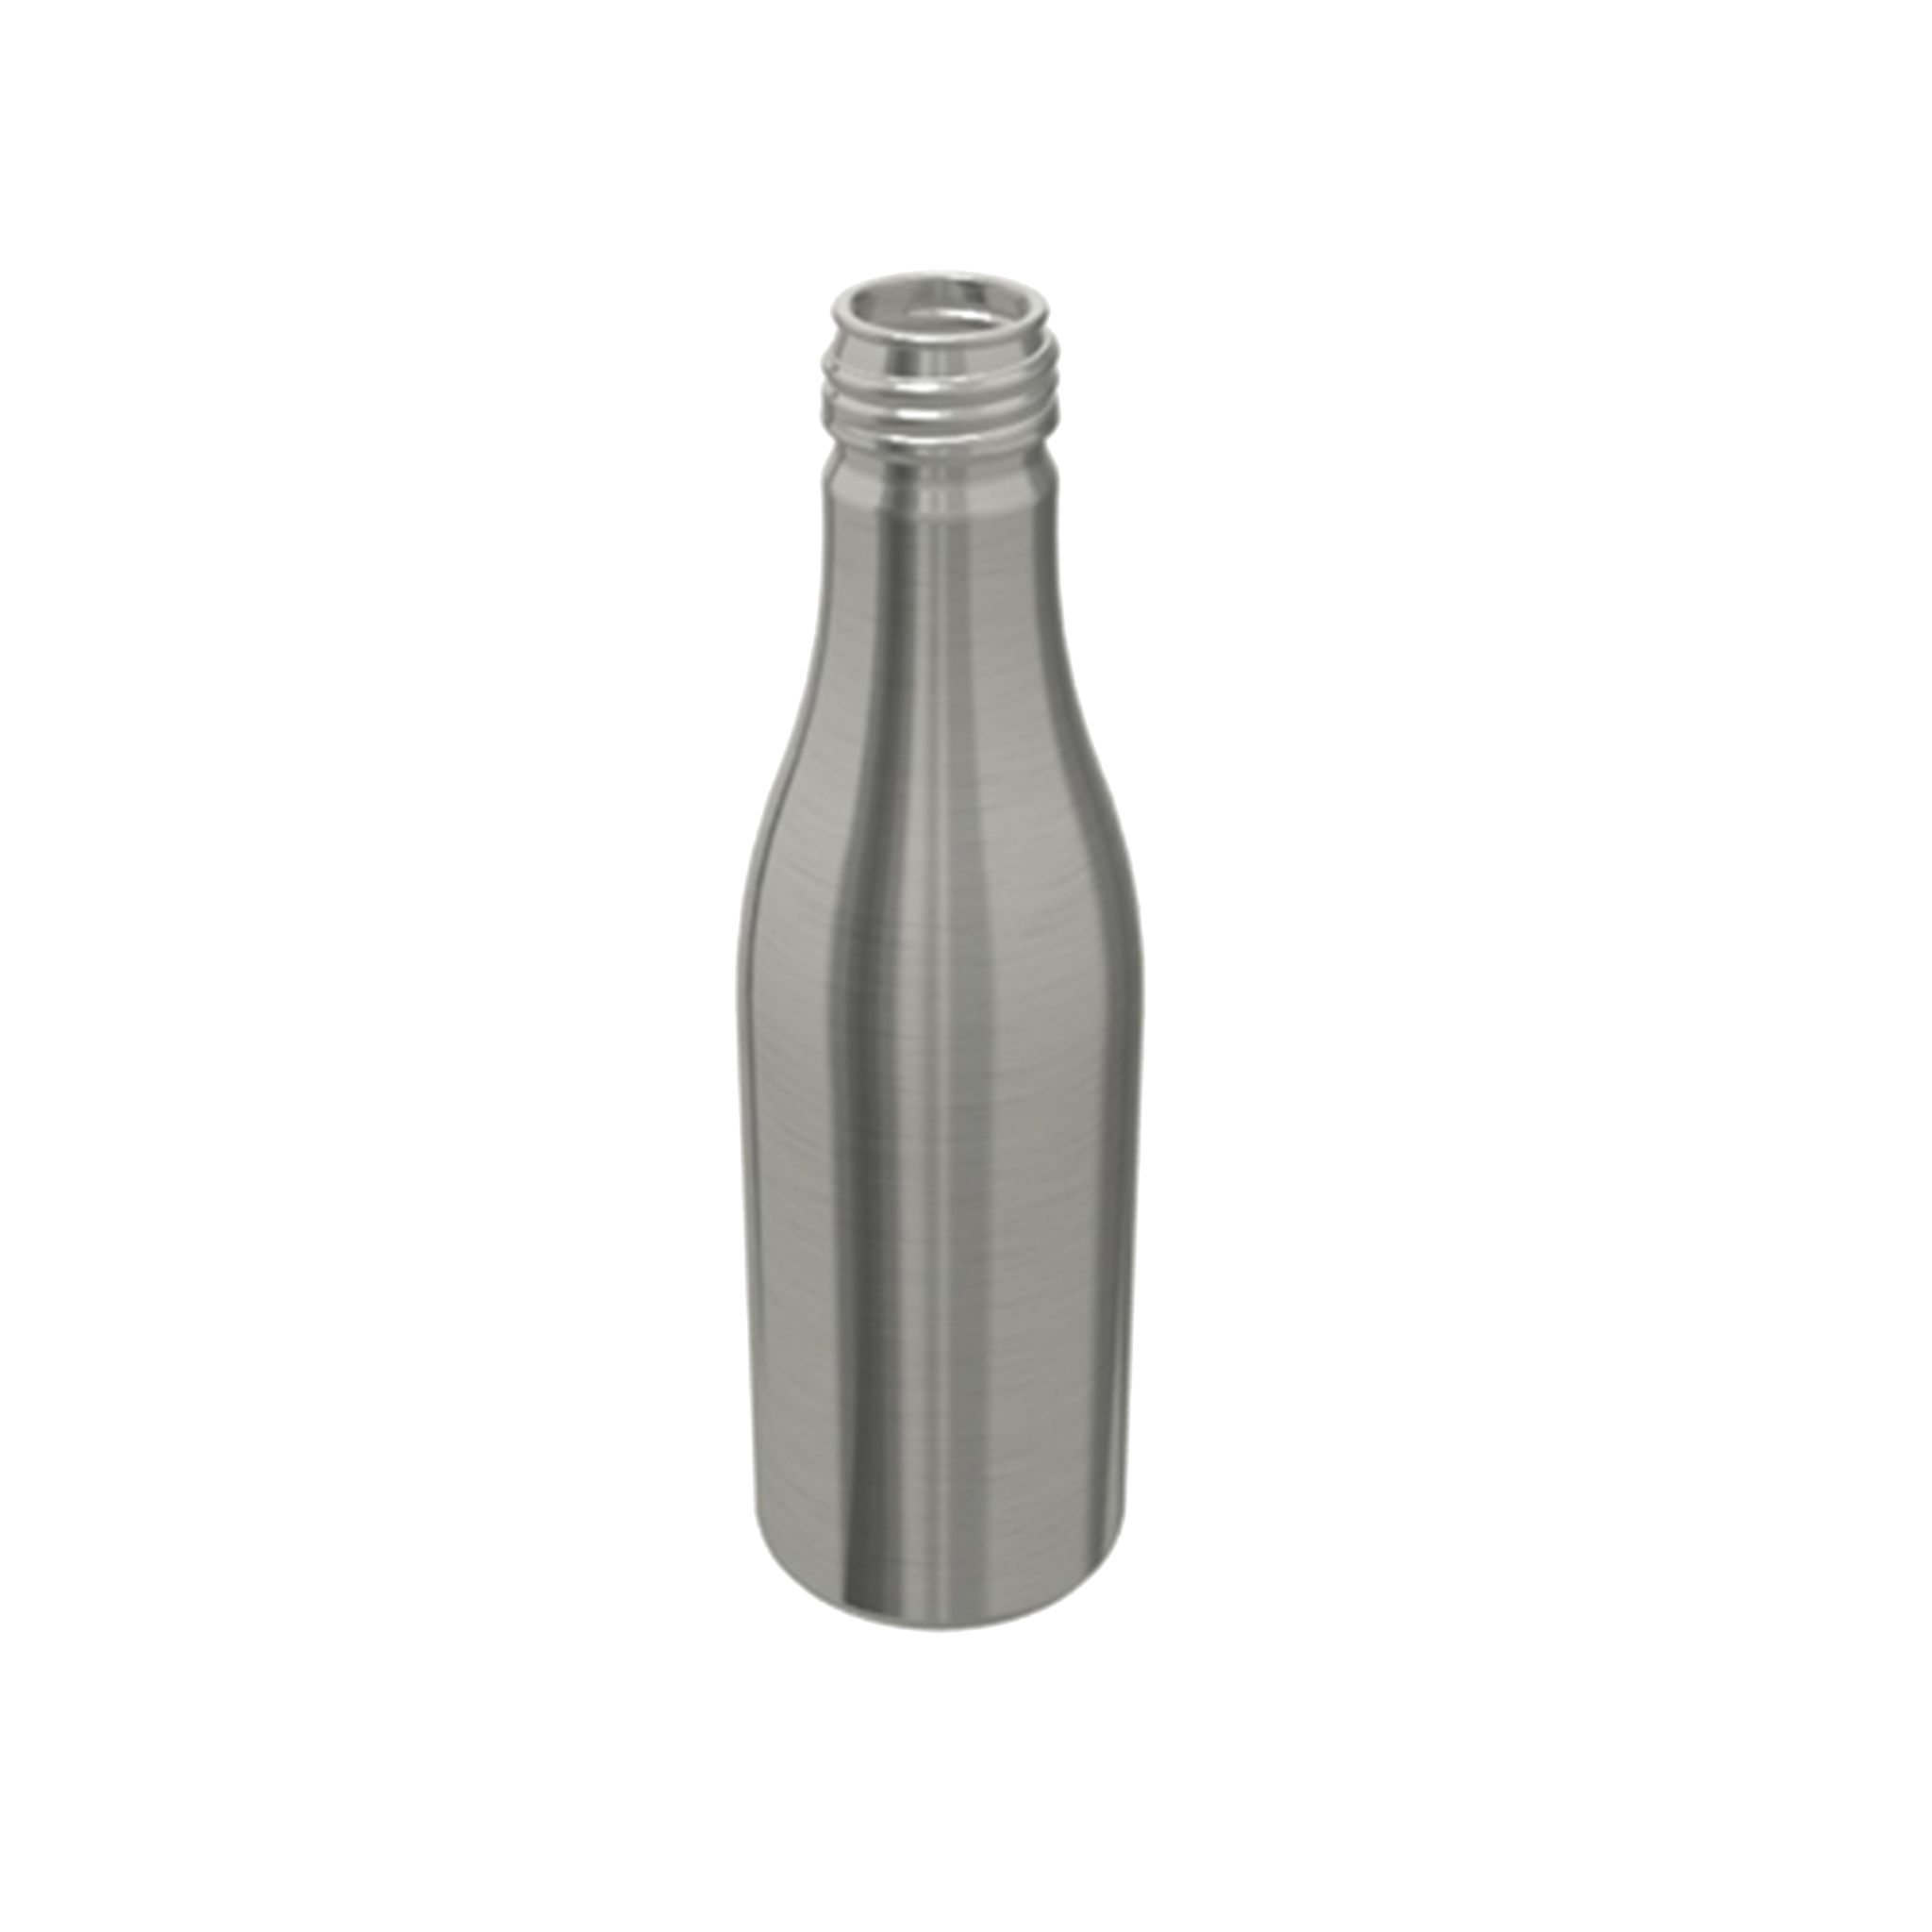 Alu ø53 Milan (250ml) Screwcap